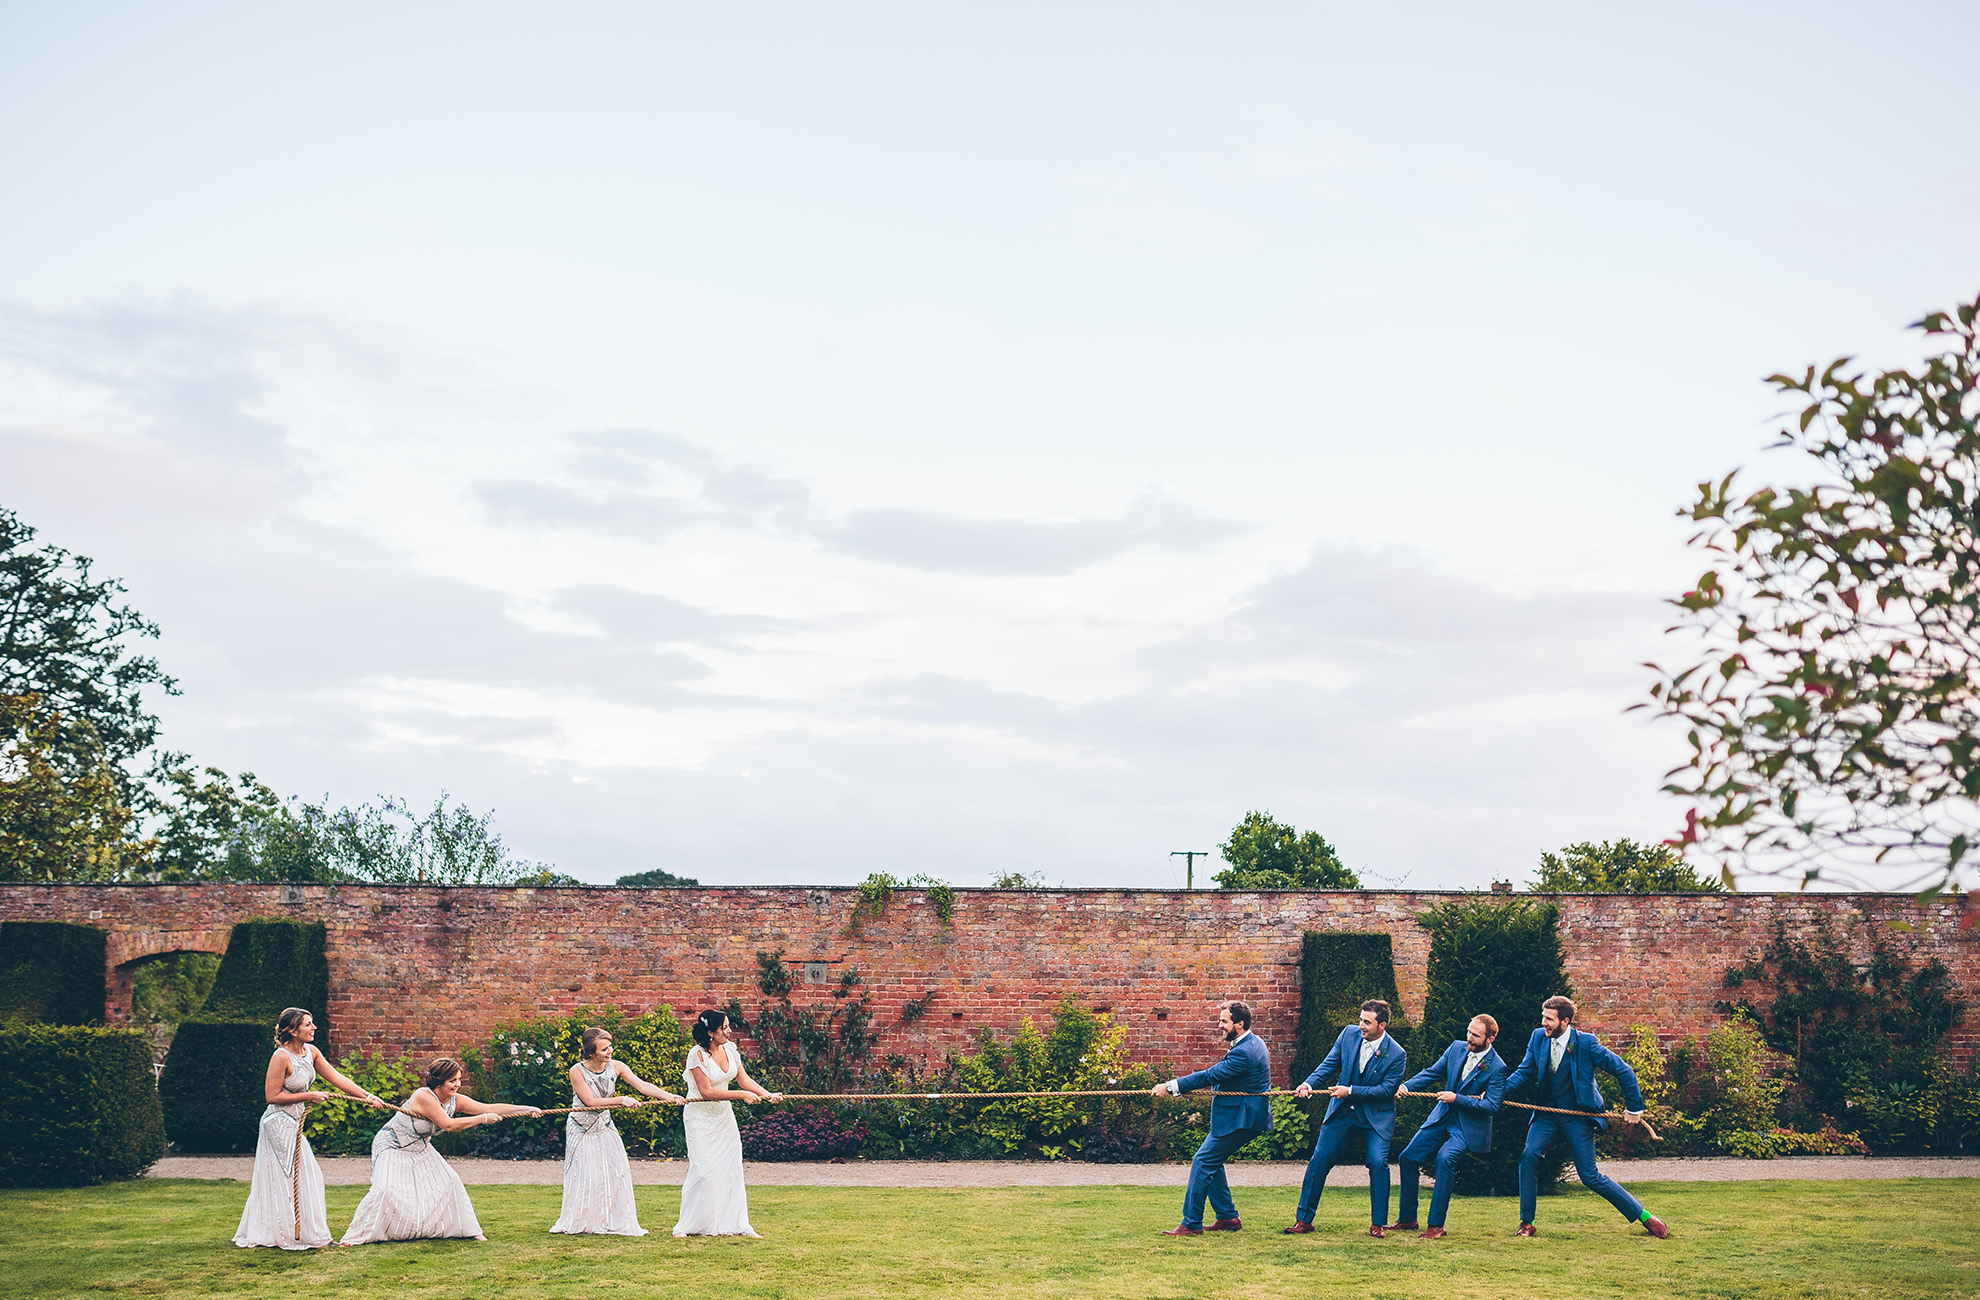 The wedding party play a game of tug of war in the walled gardens at Combermere Abbey wedding venue in Cheshire